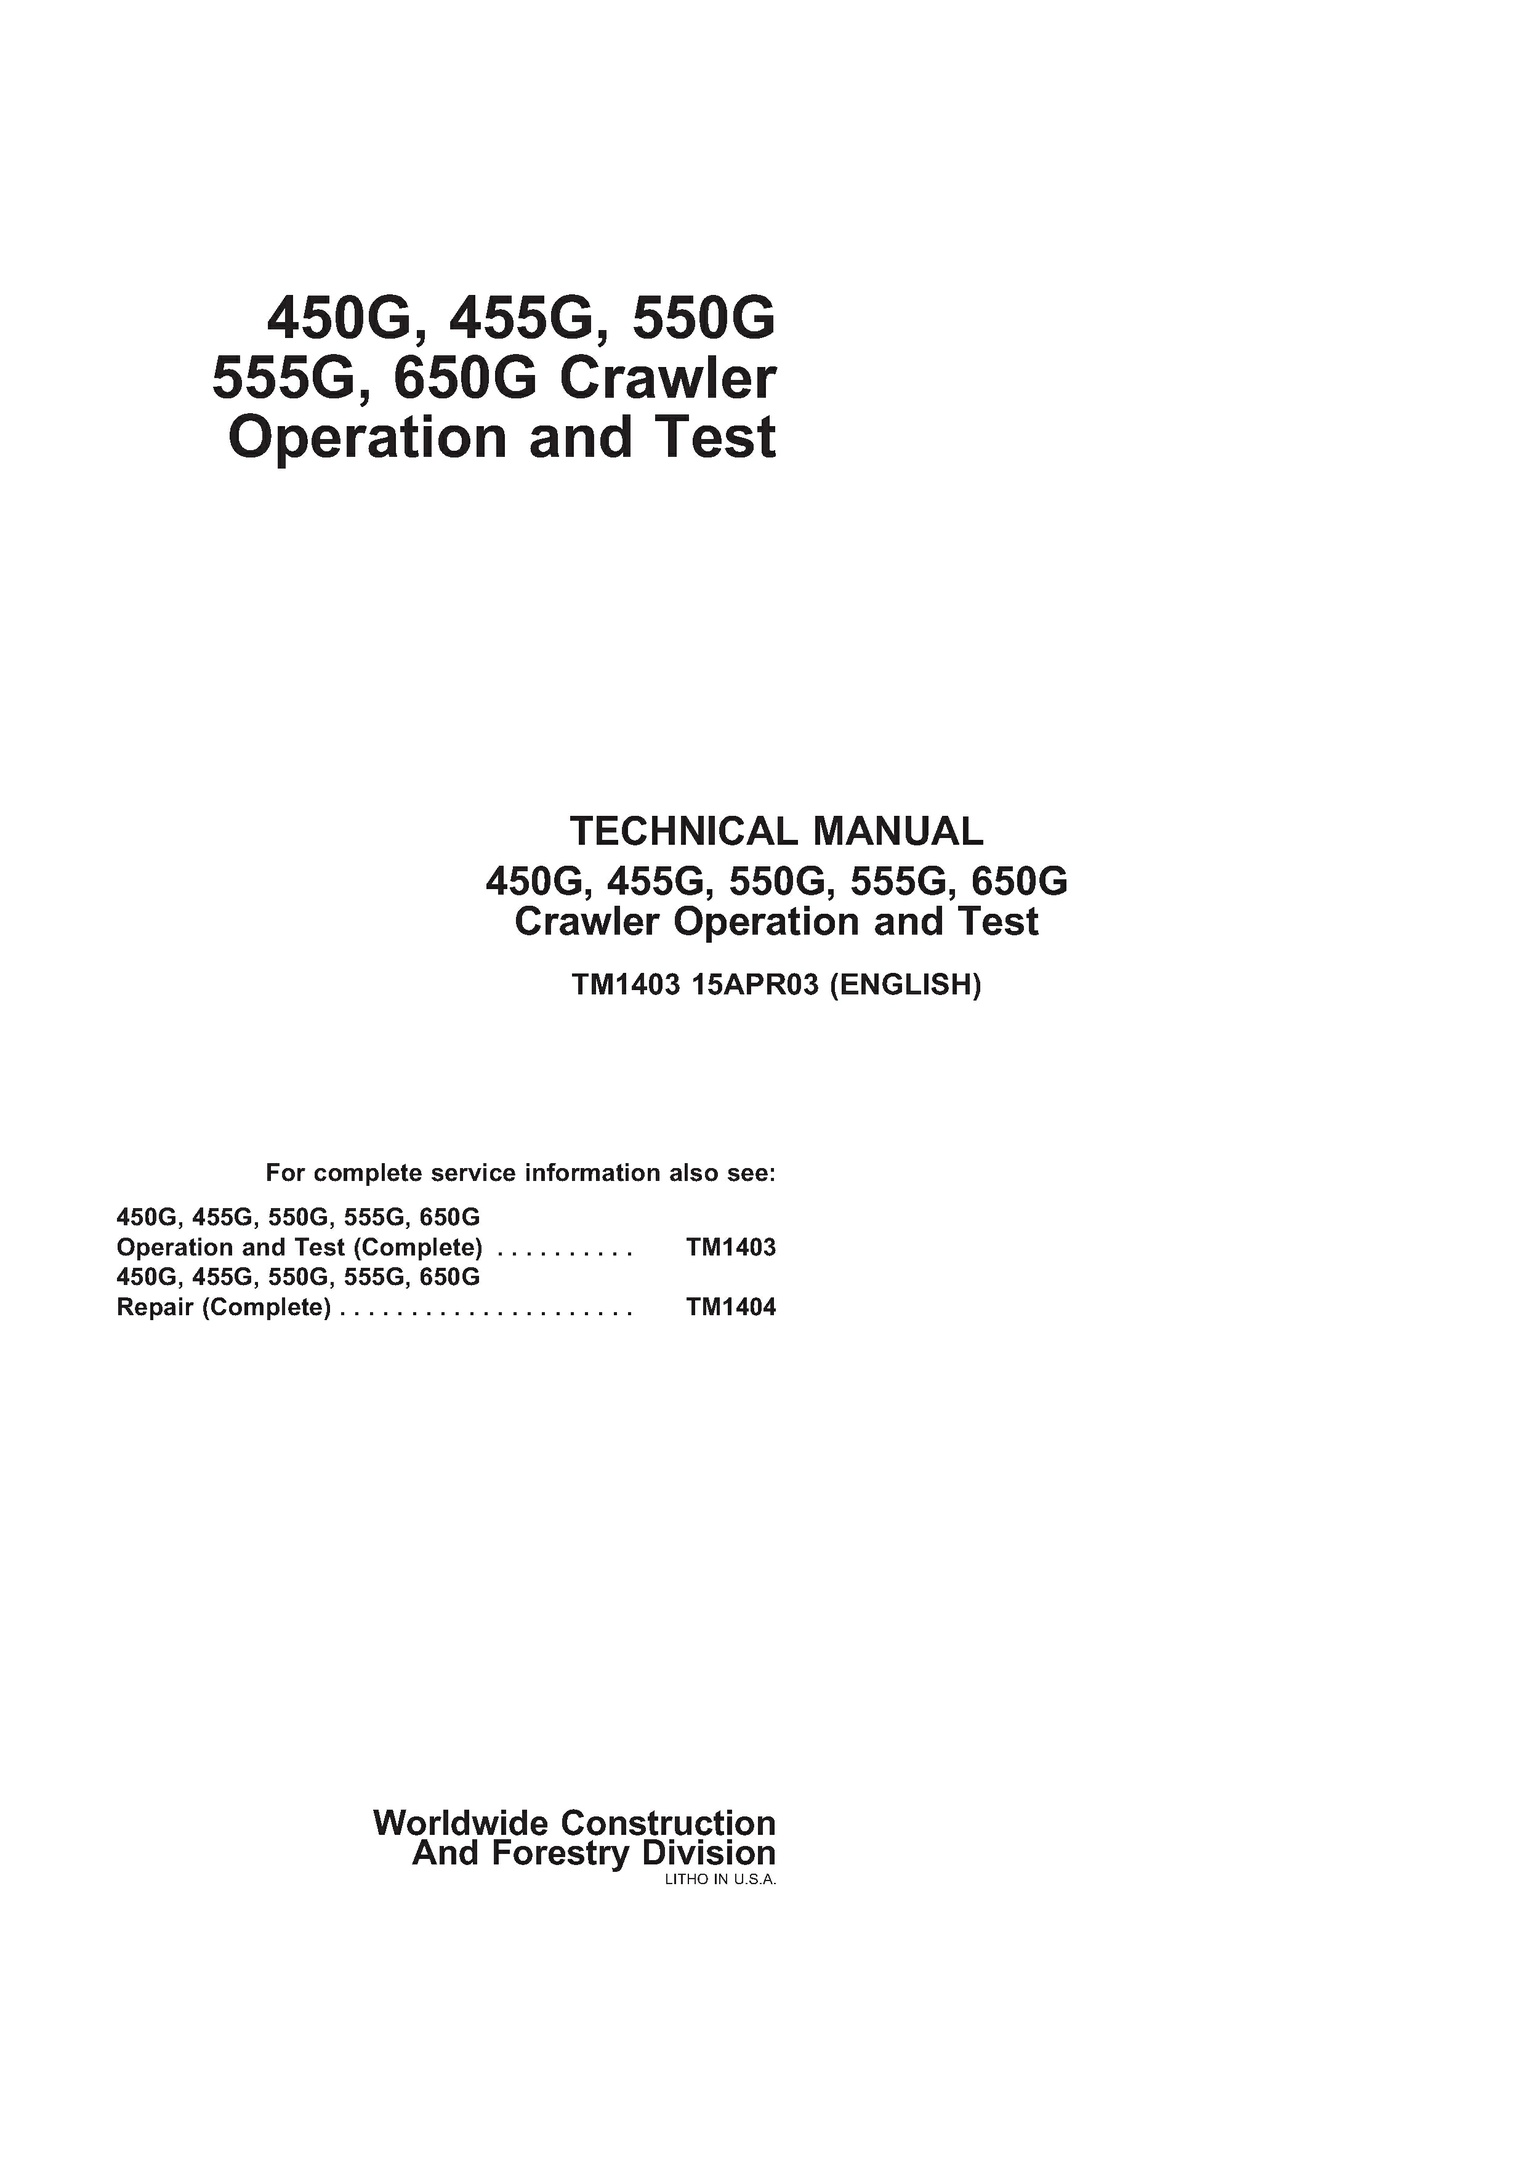 pdf download john deere 450g 455g 550g 555g 650g crawl rh sellfy com John Deere Riding Mower Diagram John Deere Ignition Switch Diagram